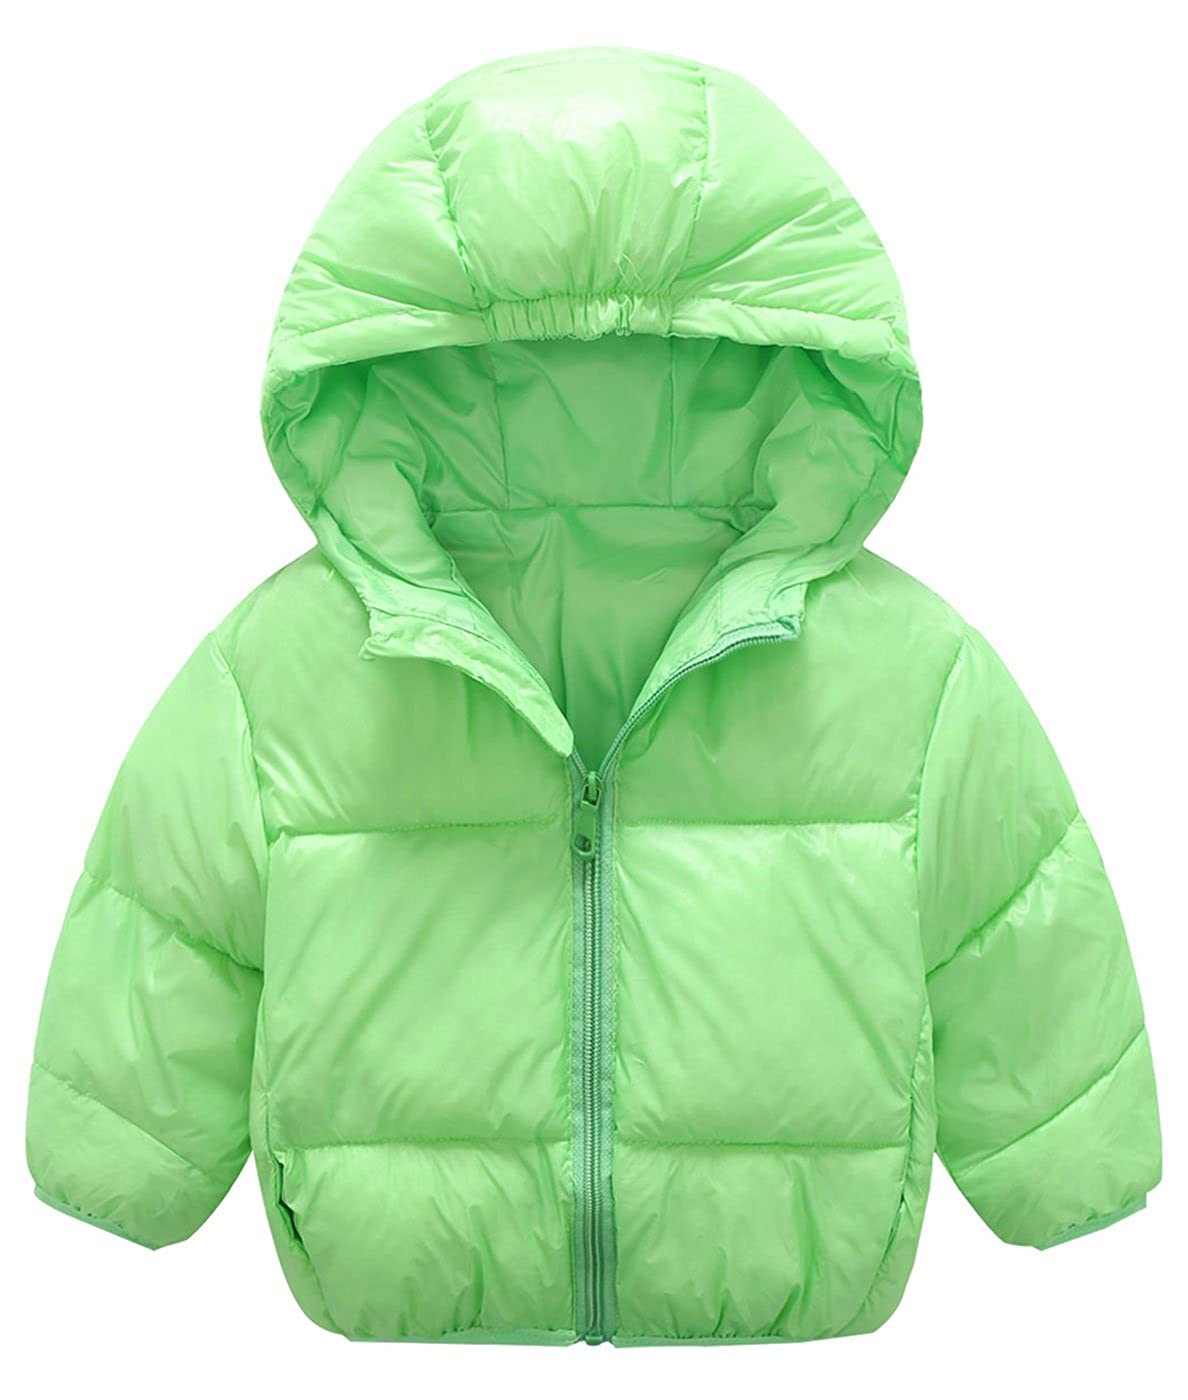 Mengxiaoya Baby Boys Girls Winter Puffer Coat Hoodie Down Jacket Windproof Solid Green 12-24Months